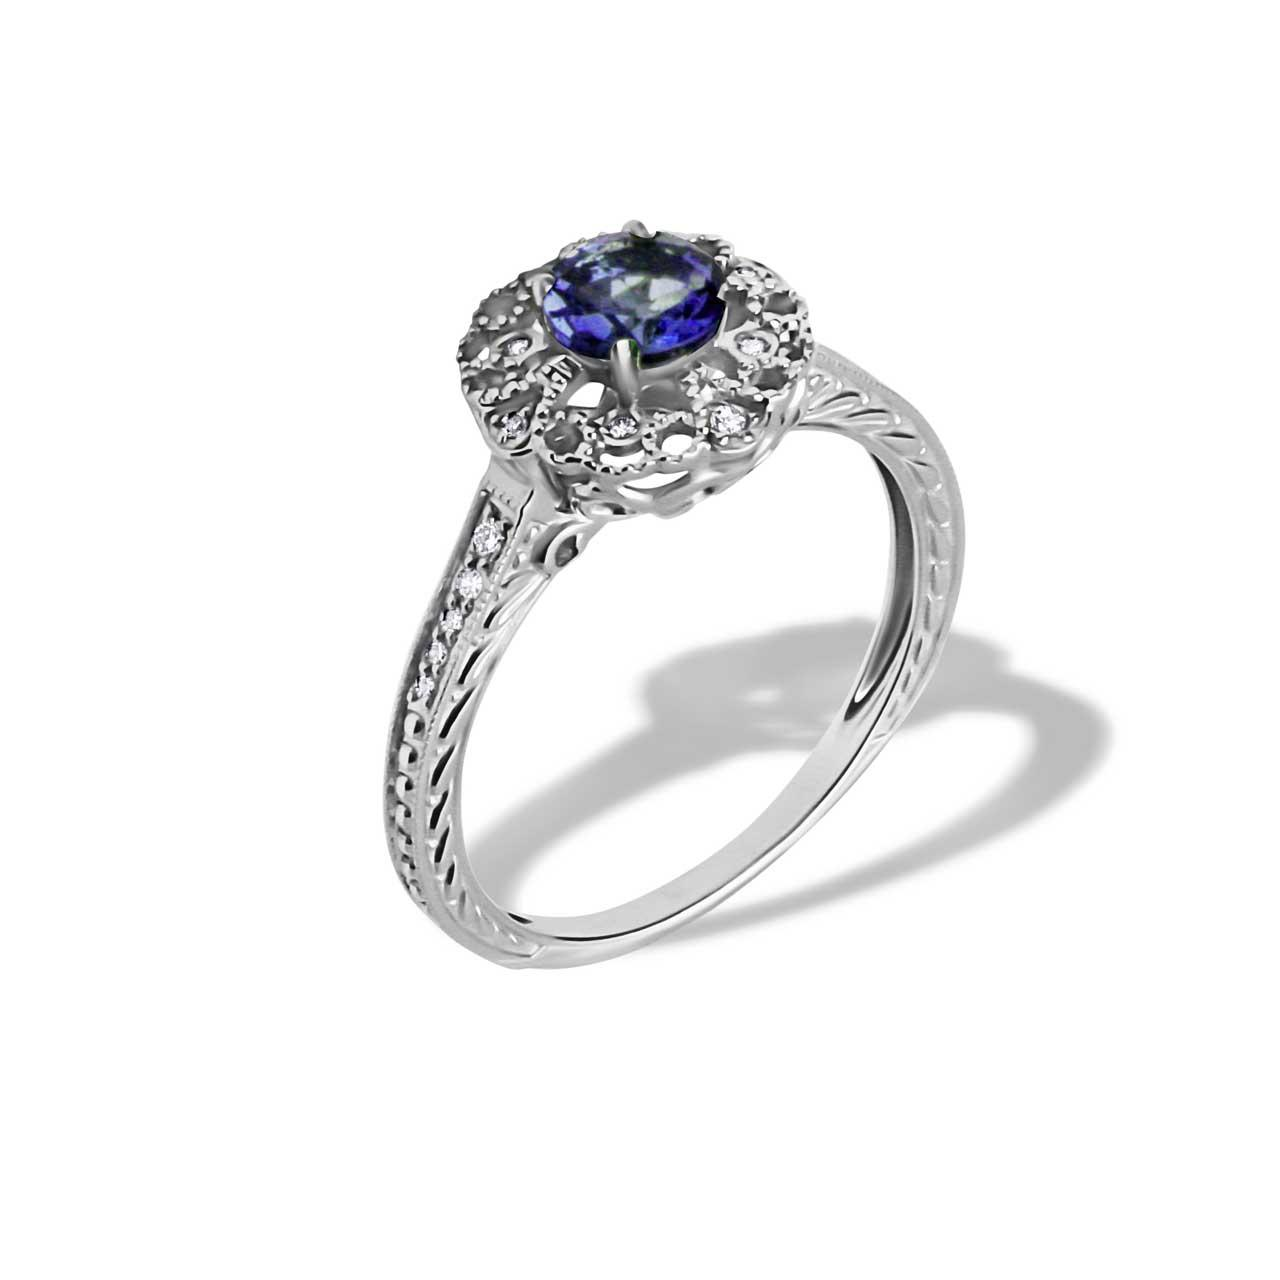 Sapphire engraved gold ring 1